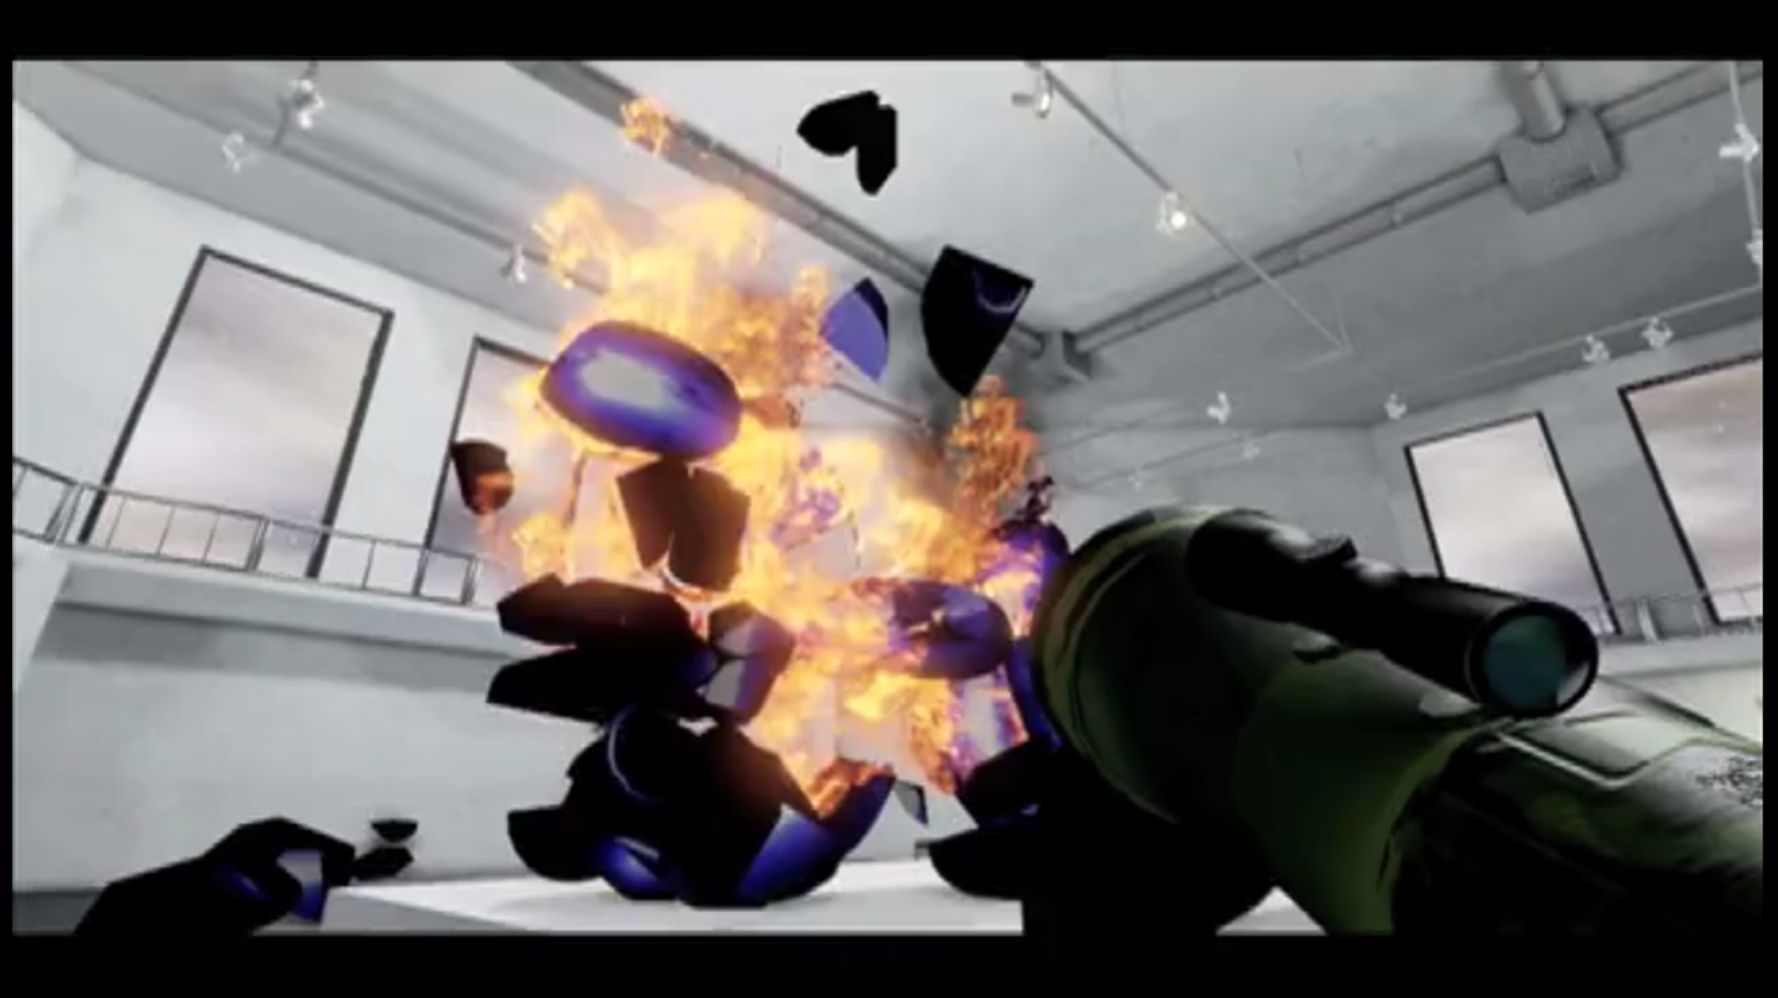 Jeff Koons Must Die!!!' A Video Game That Brings Your Angry